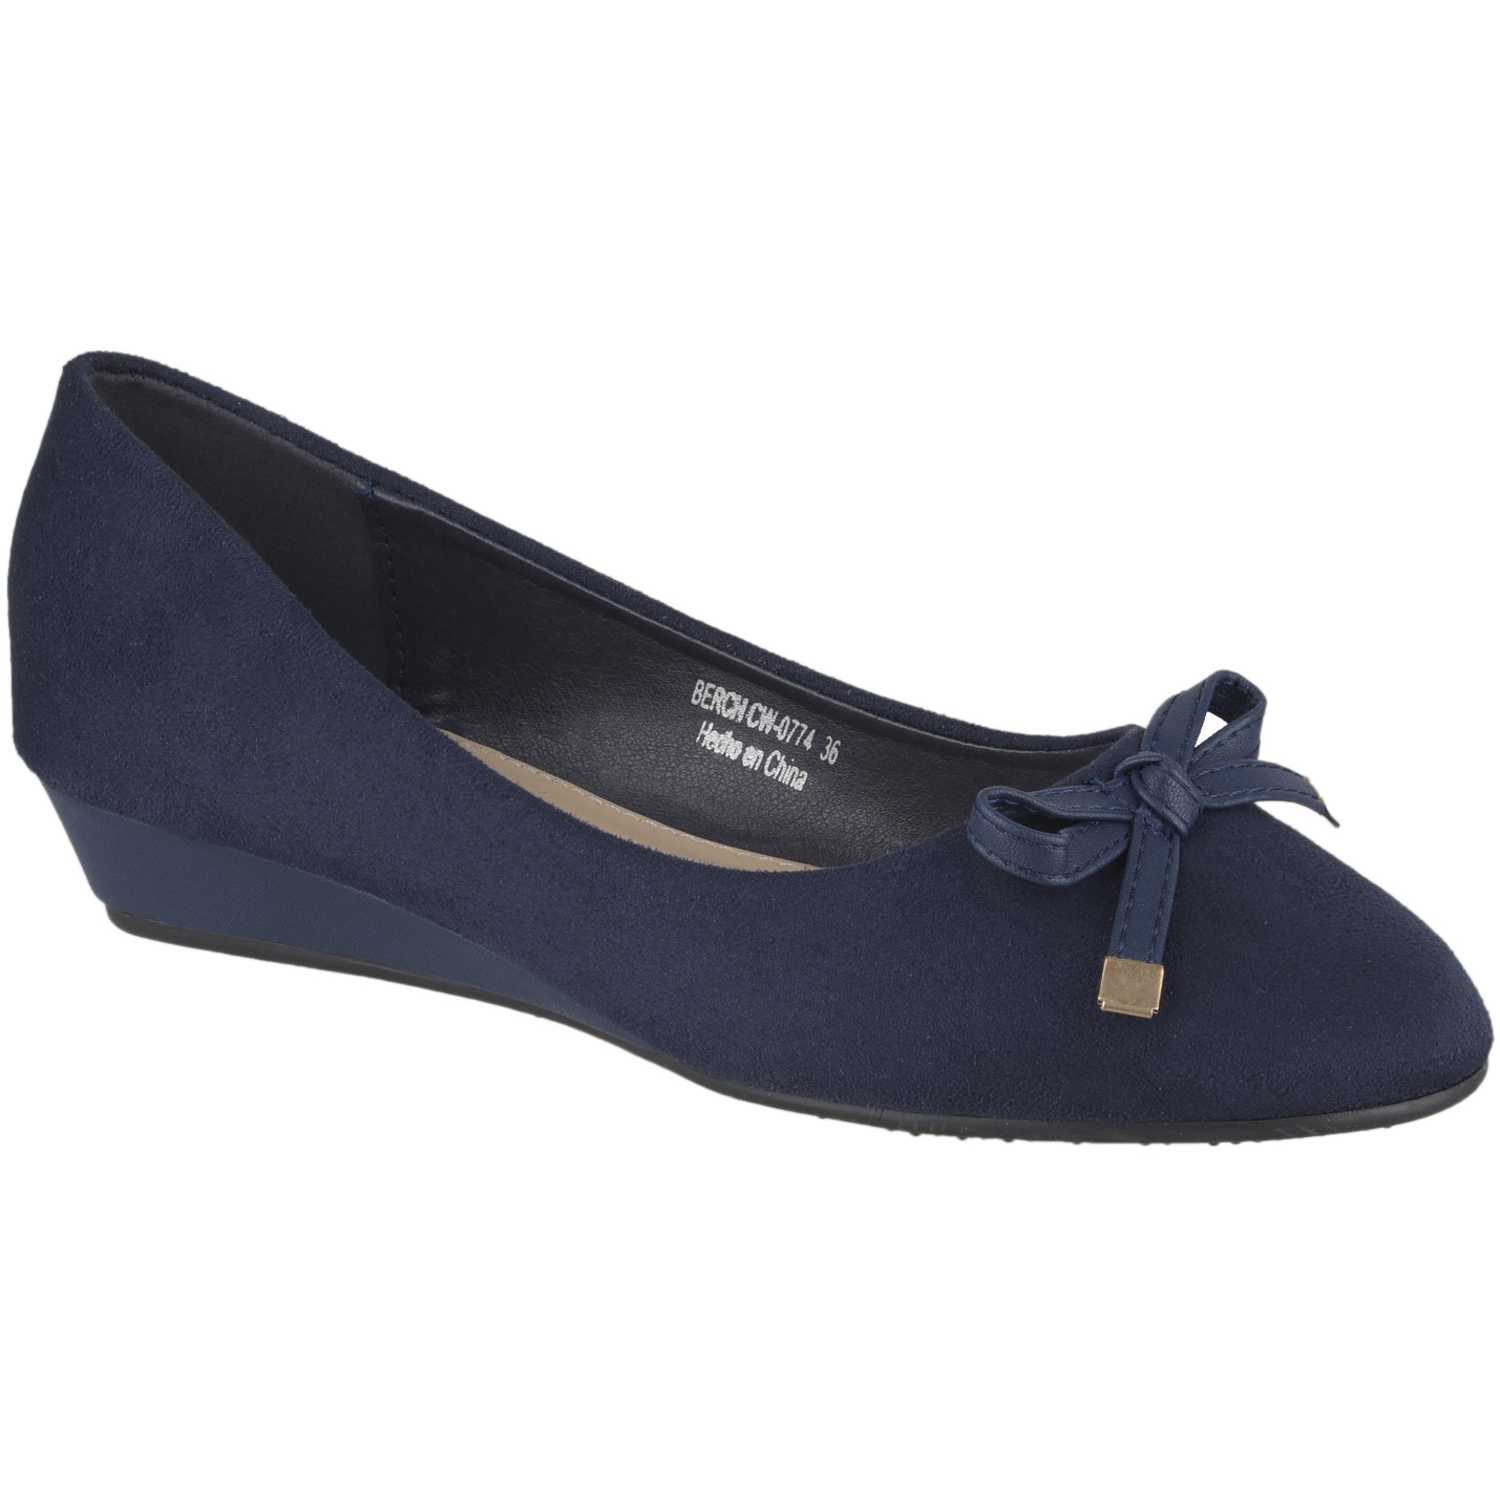 Platanitos cw-0774 Azul Estiletos y Pumps